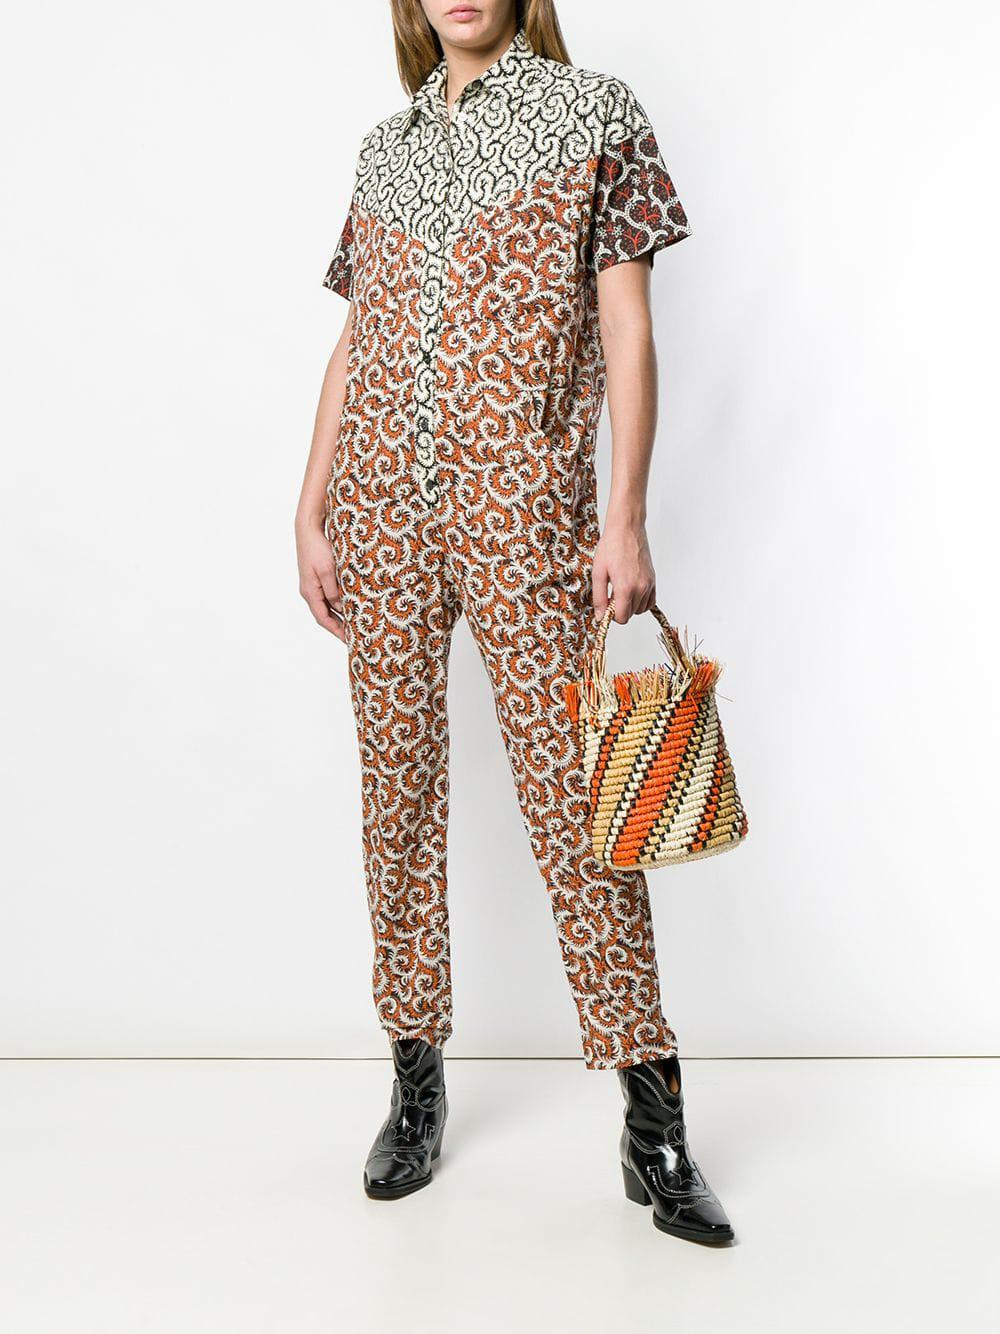 602f9ca6b8 Lyst - Étoile Isabel Marant All-over Print Jumpsuit in White